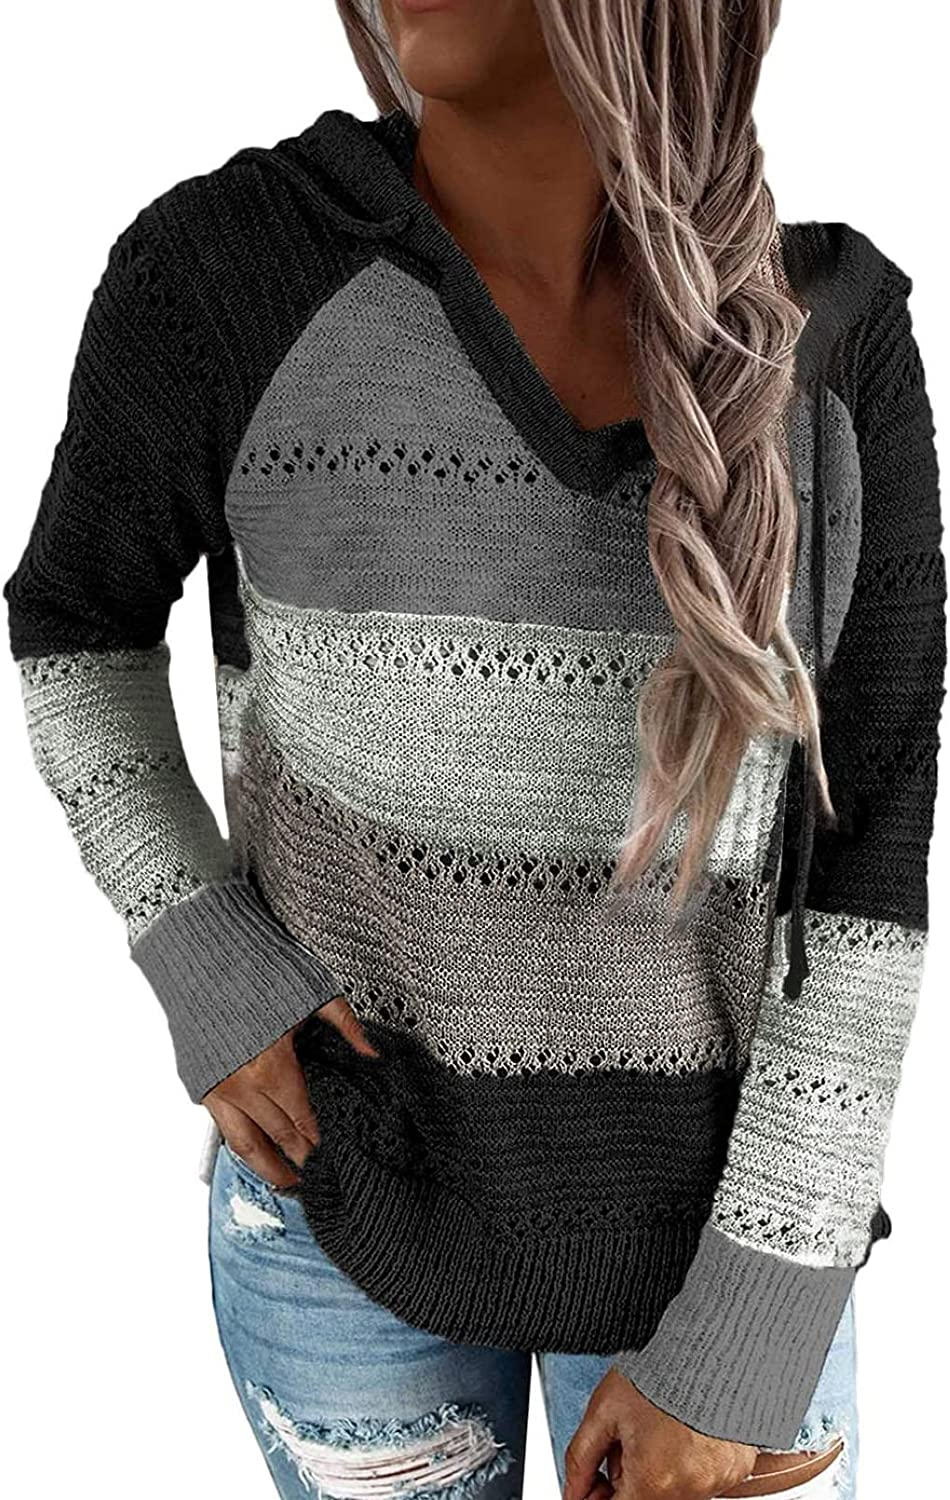 Biucly Women's Color Block Knit Hoodies Sweaters Loose Long Sleeve V Neck Drawstring Pullover Sweatshirts(S-3XL)